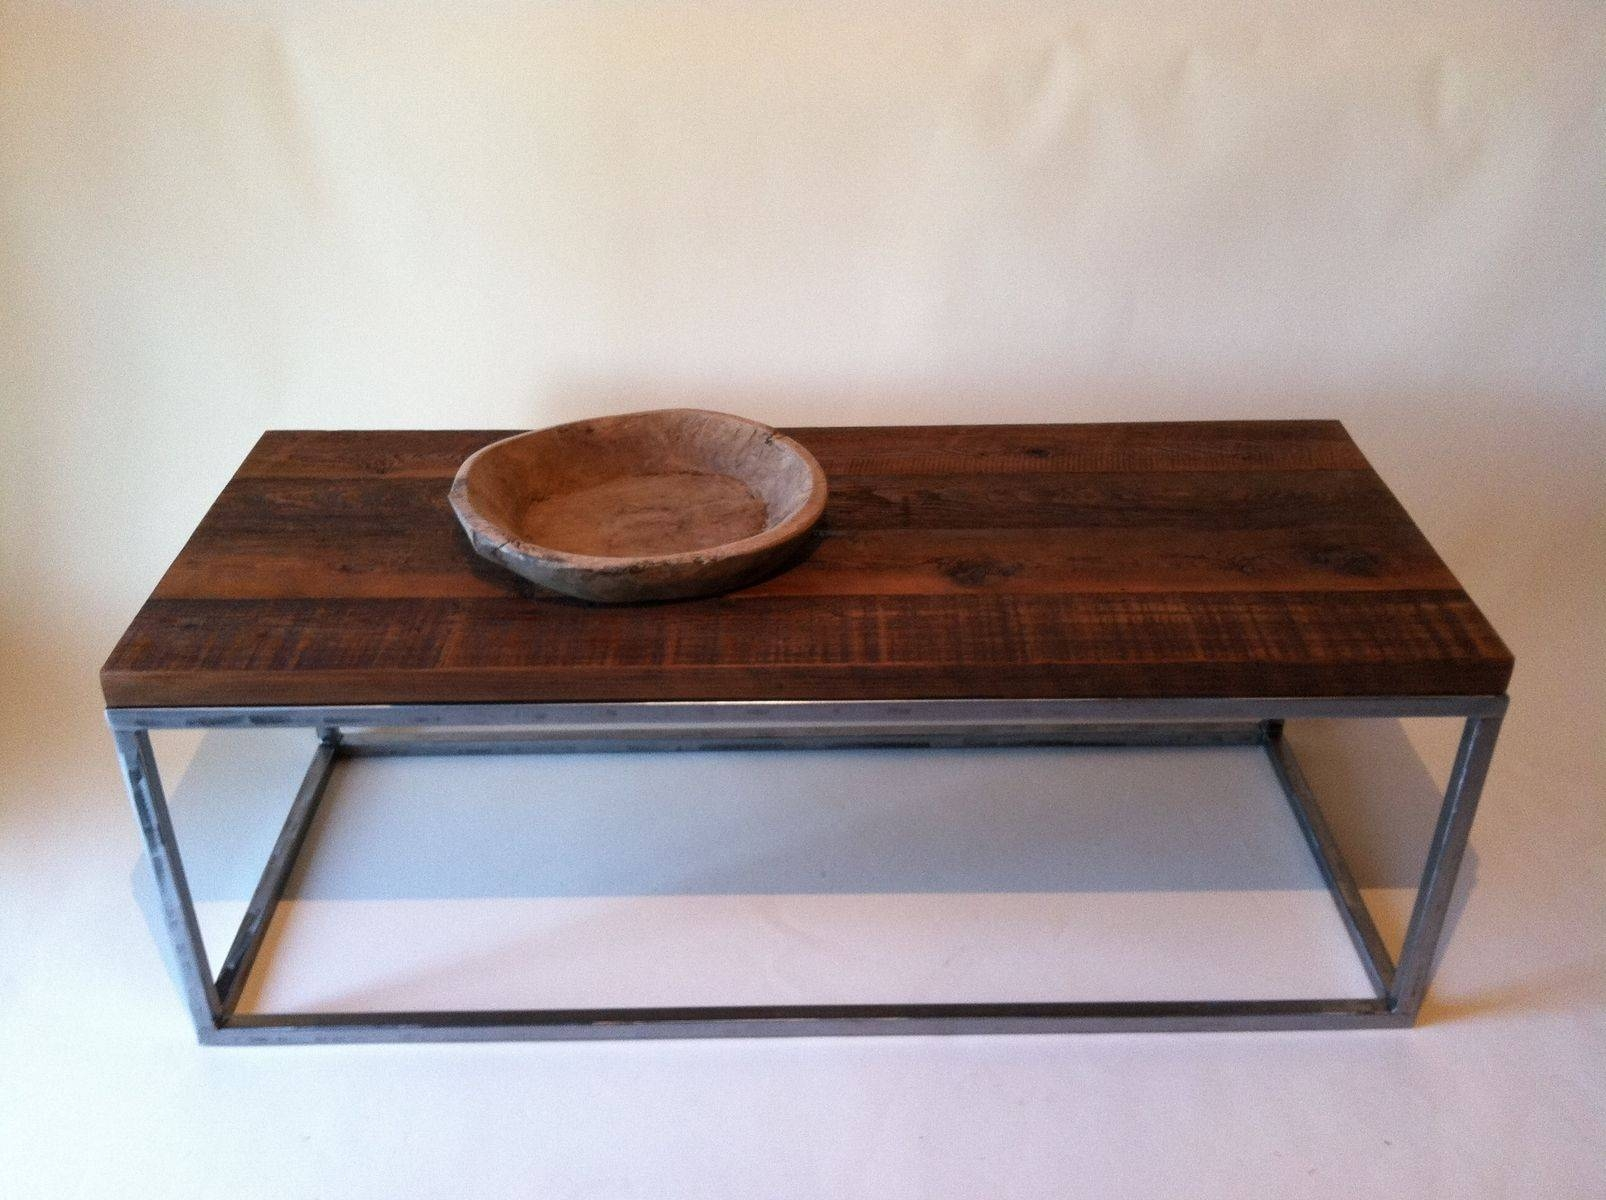 Handmade Reclaimed Wood Coffee Tables With Rectagular Polished inside Metal And Wood Coffee Tables (Image 10 of 15)